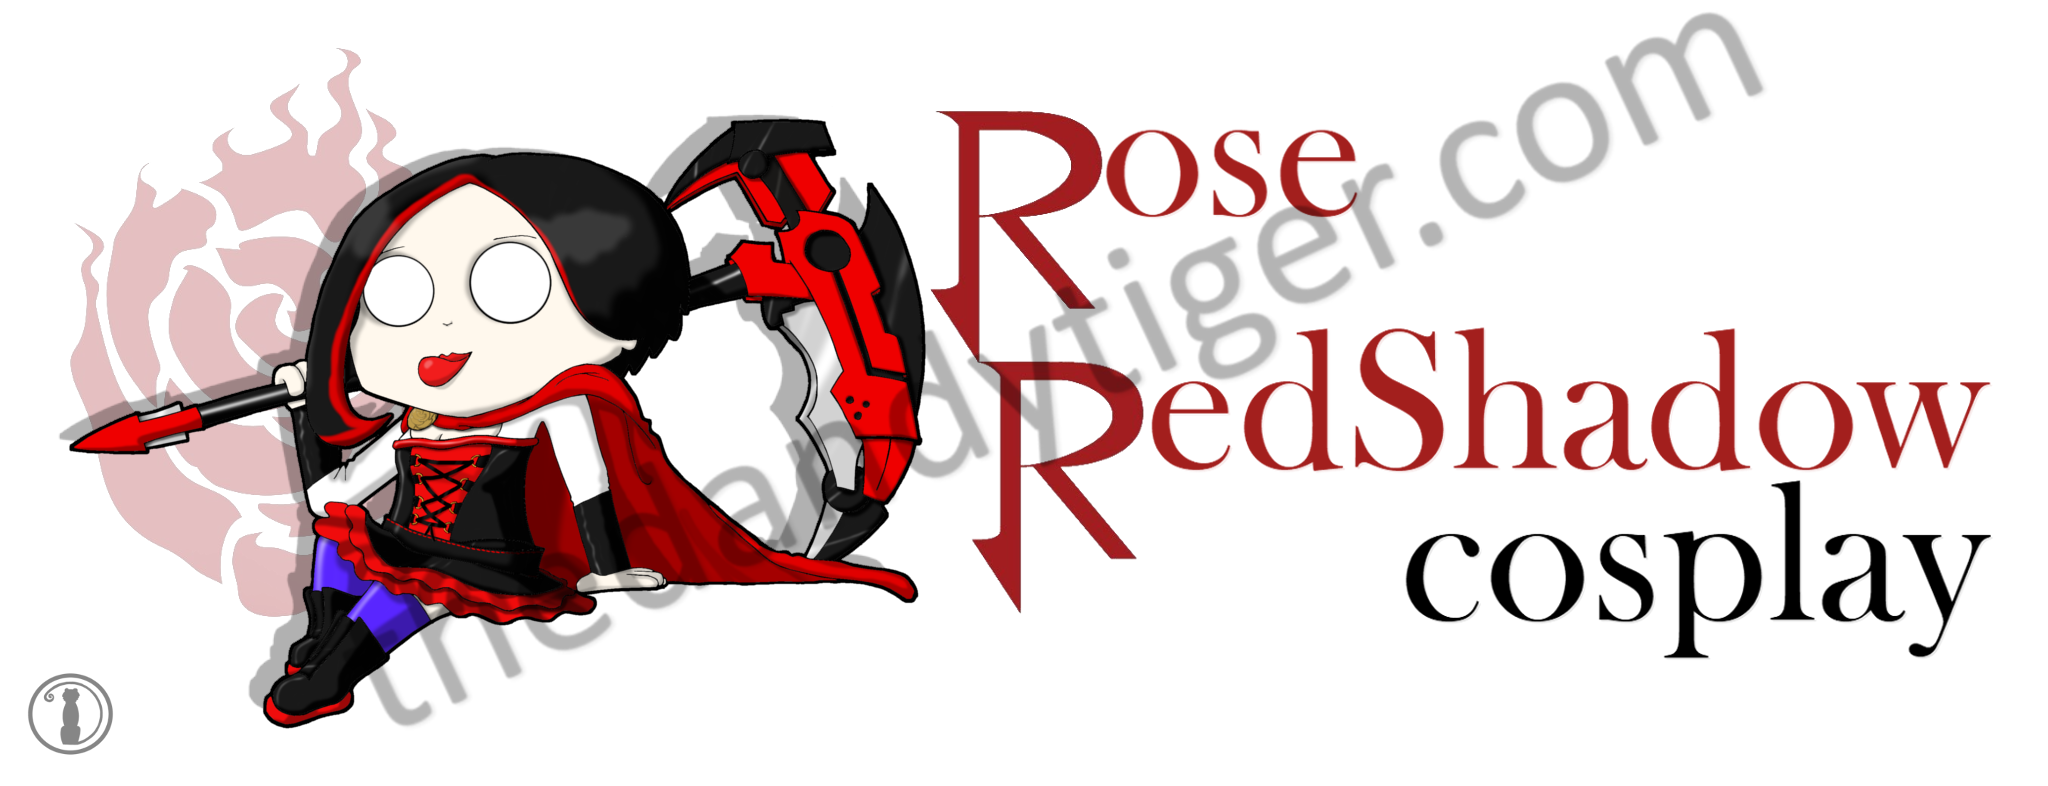 wm Rose RedShadow FB Cover 00.png